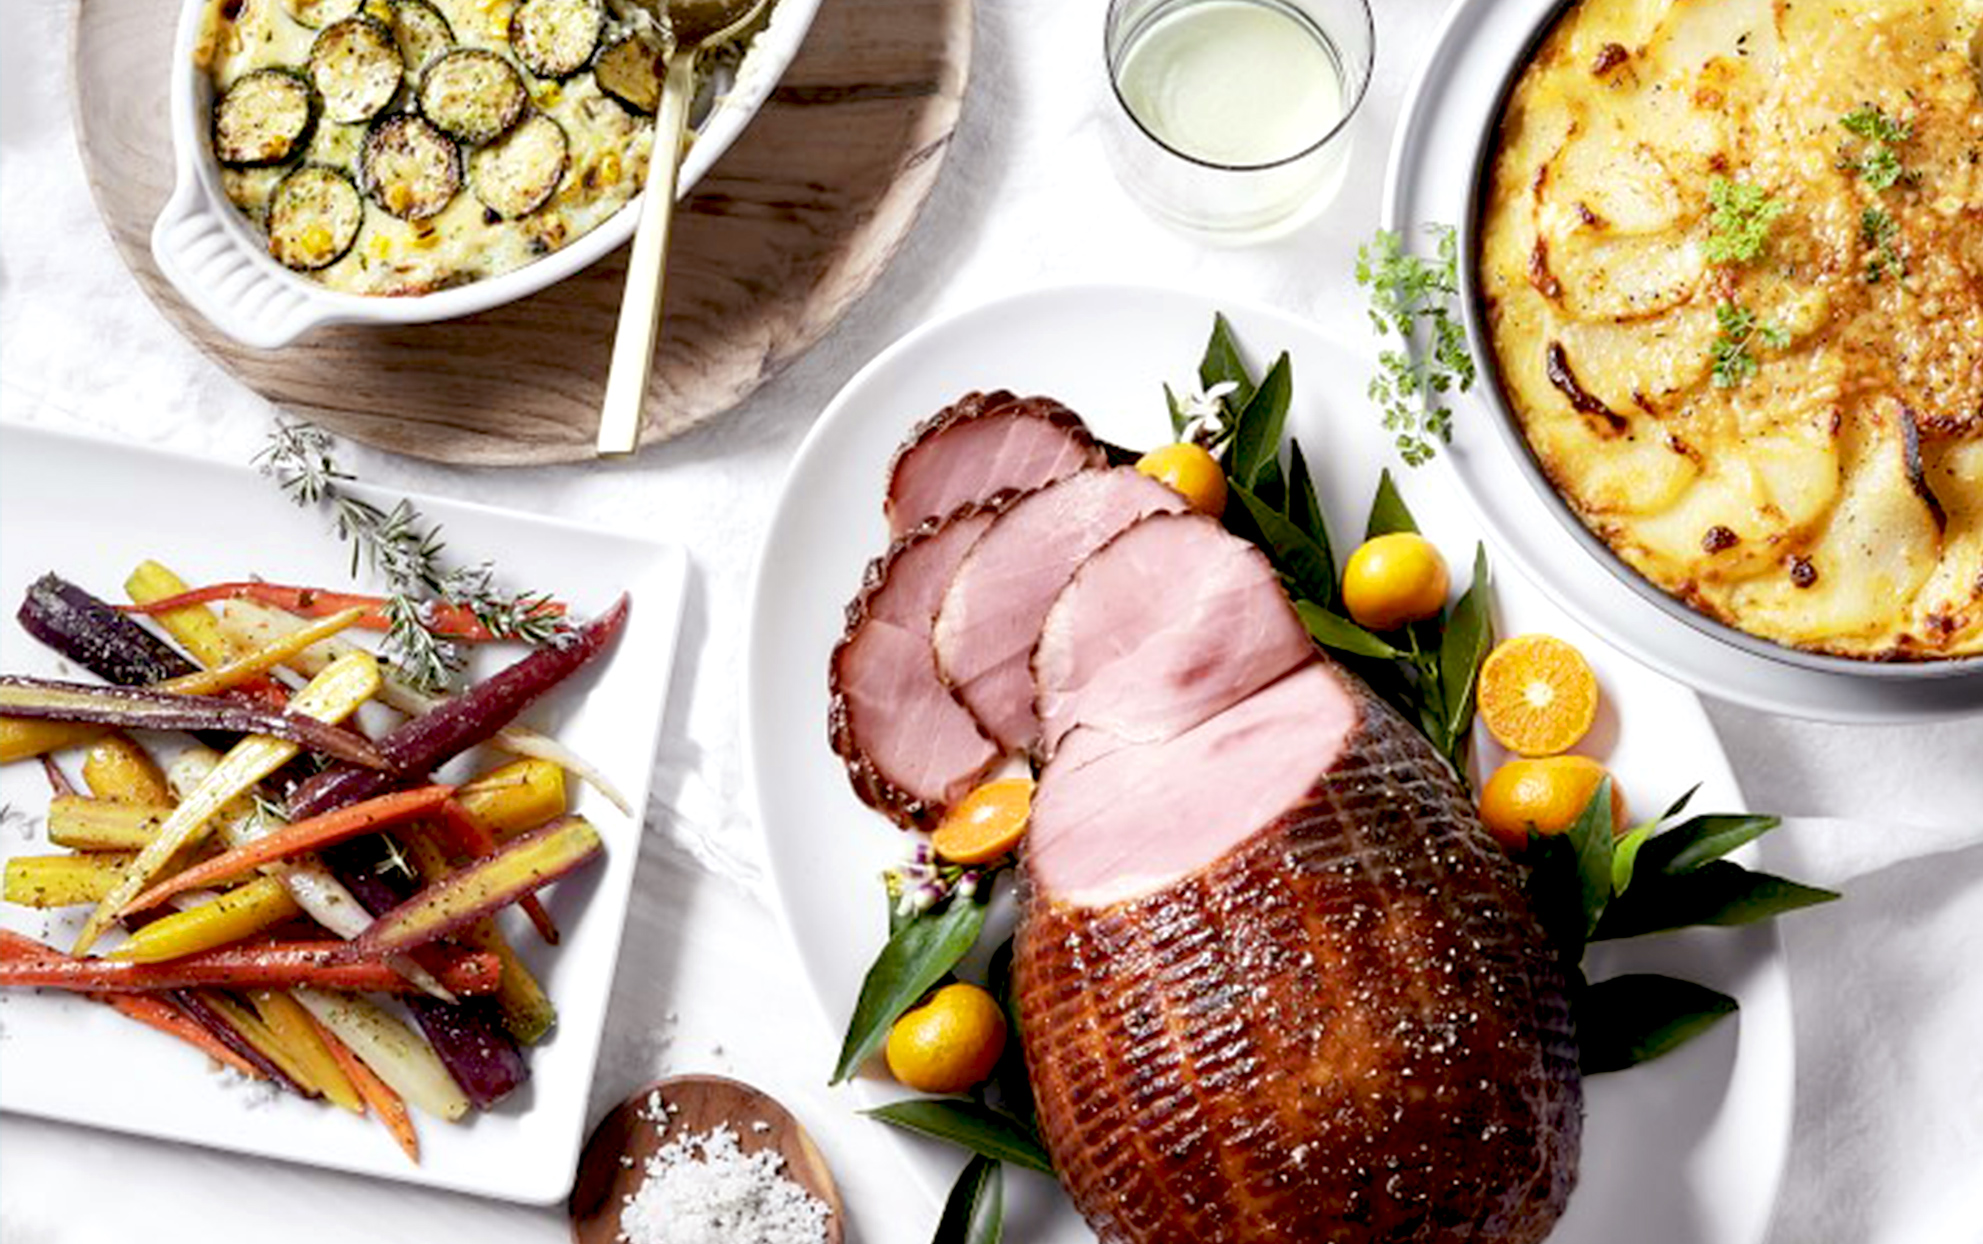 Overhead view of a Williams Sonoma Easter dinner with ham and side dishes